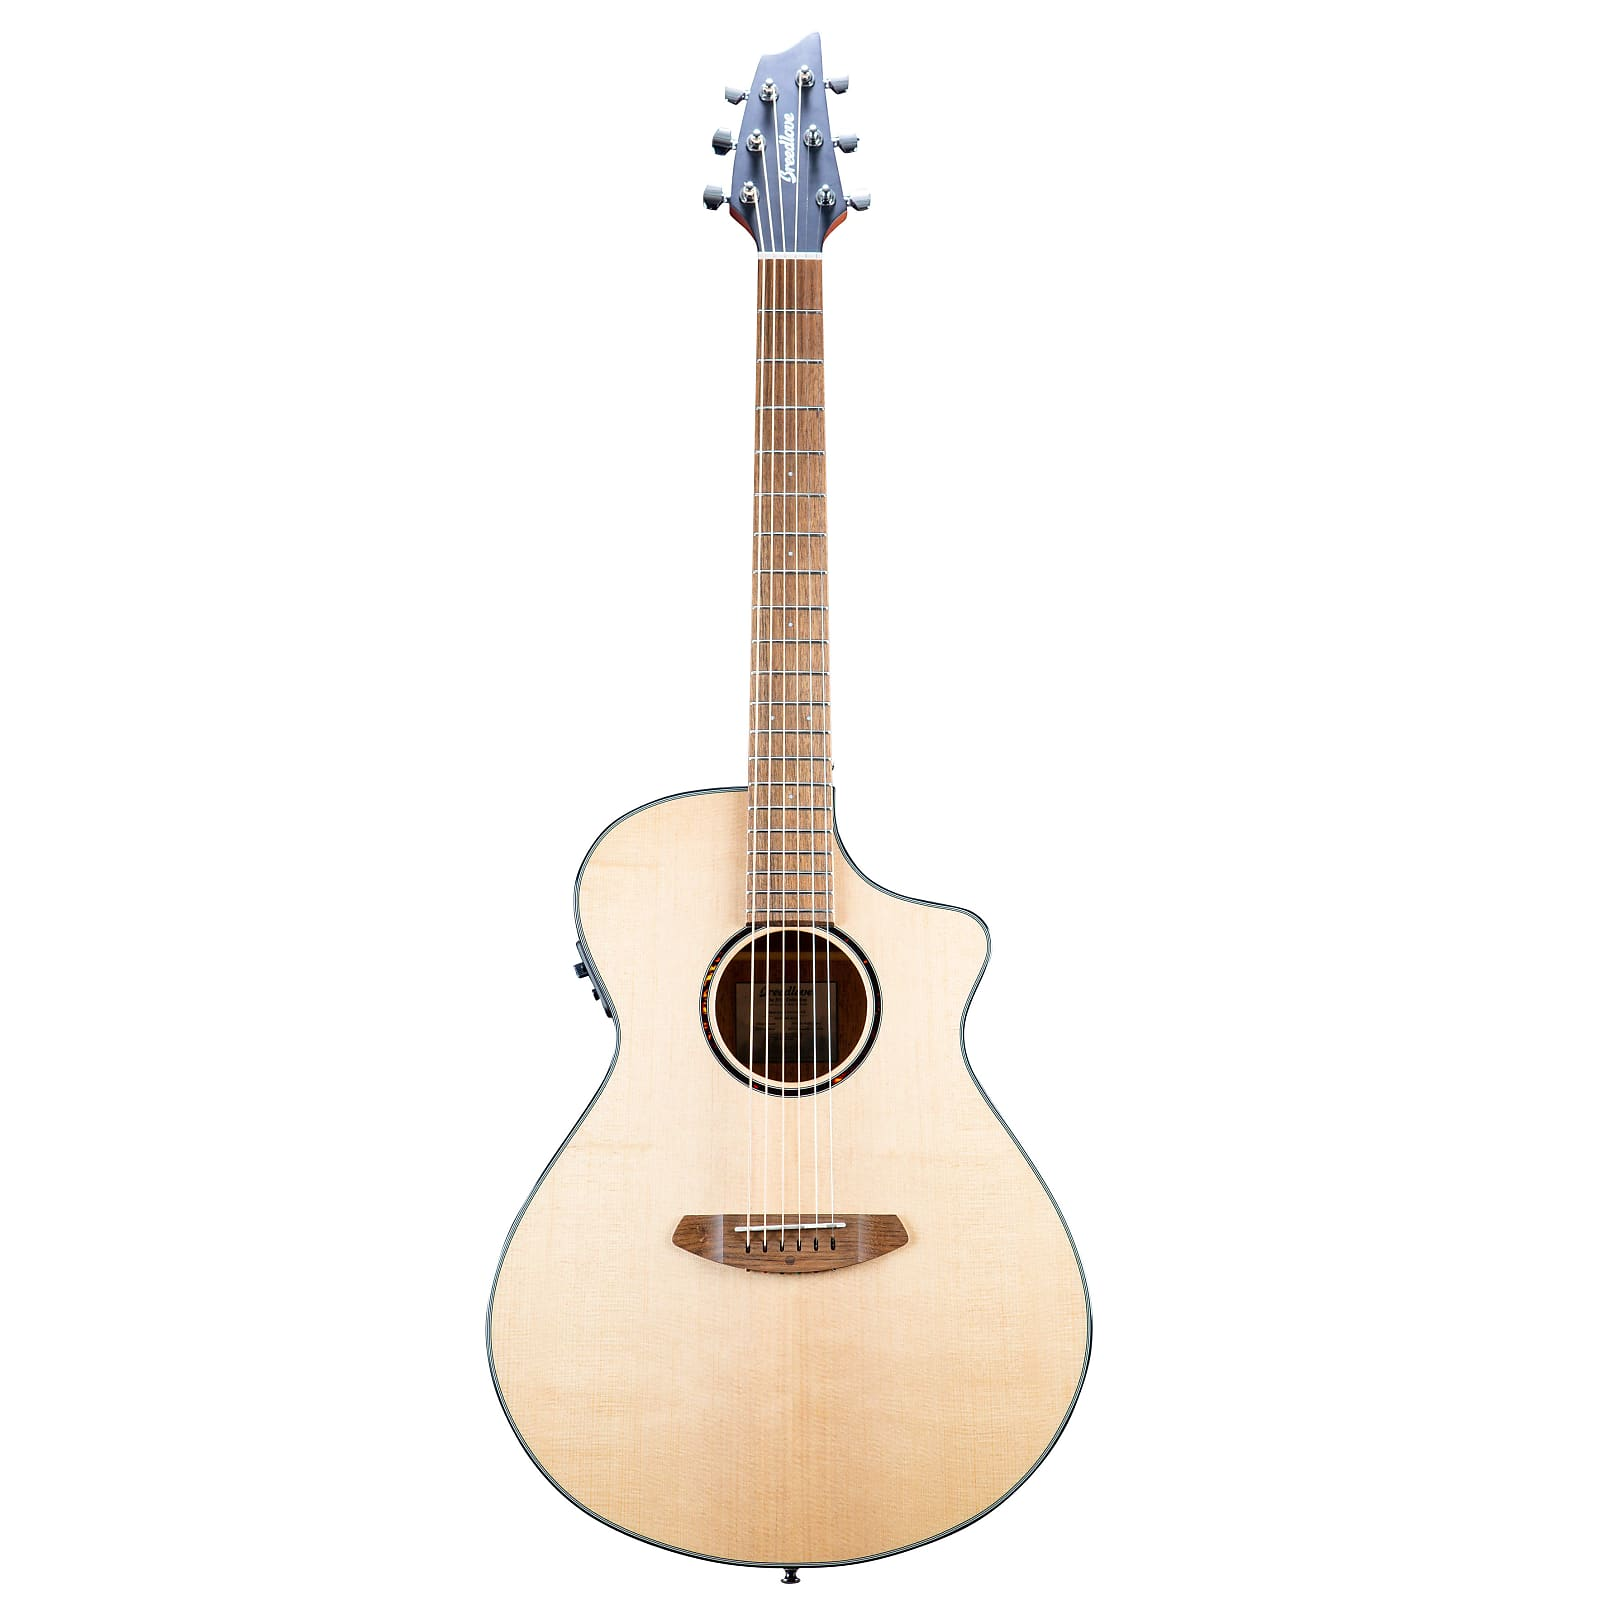 Breedlove Discovery S Concert Nylon CE Red cedar-African mahogany